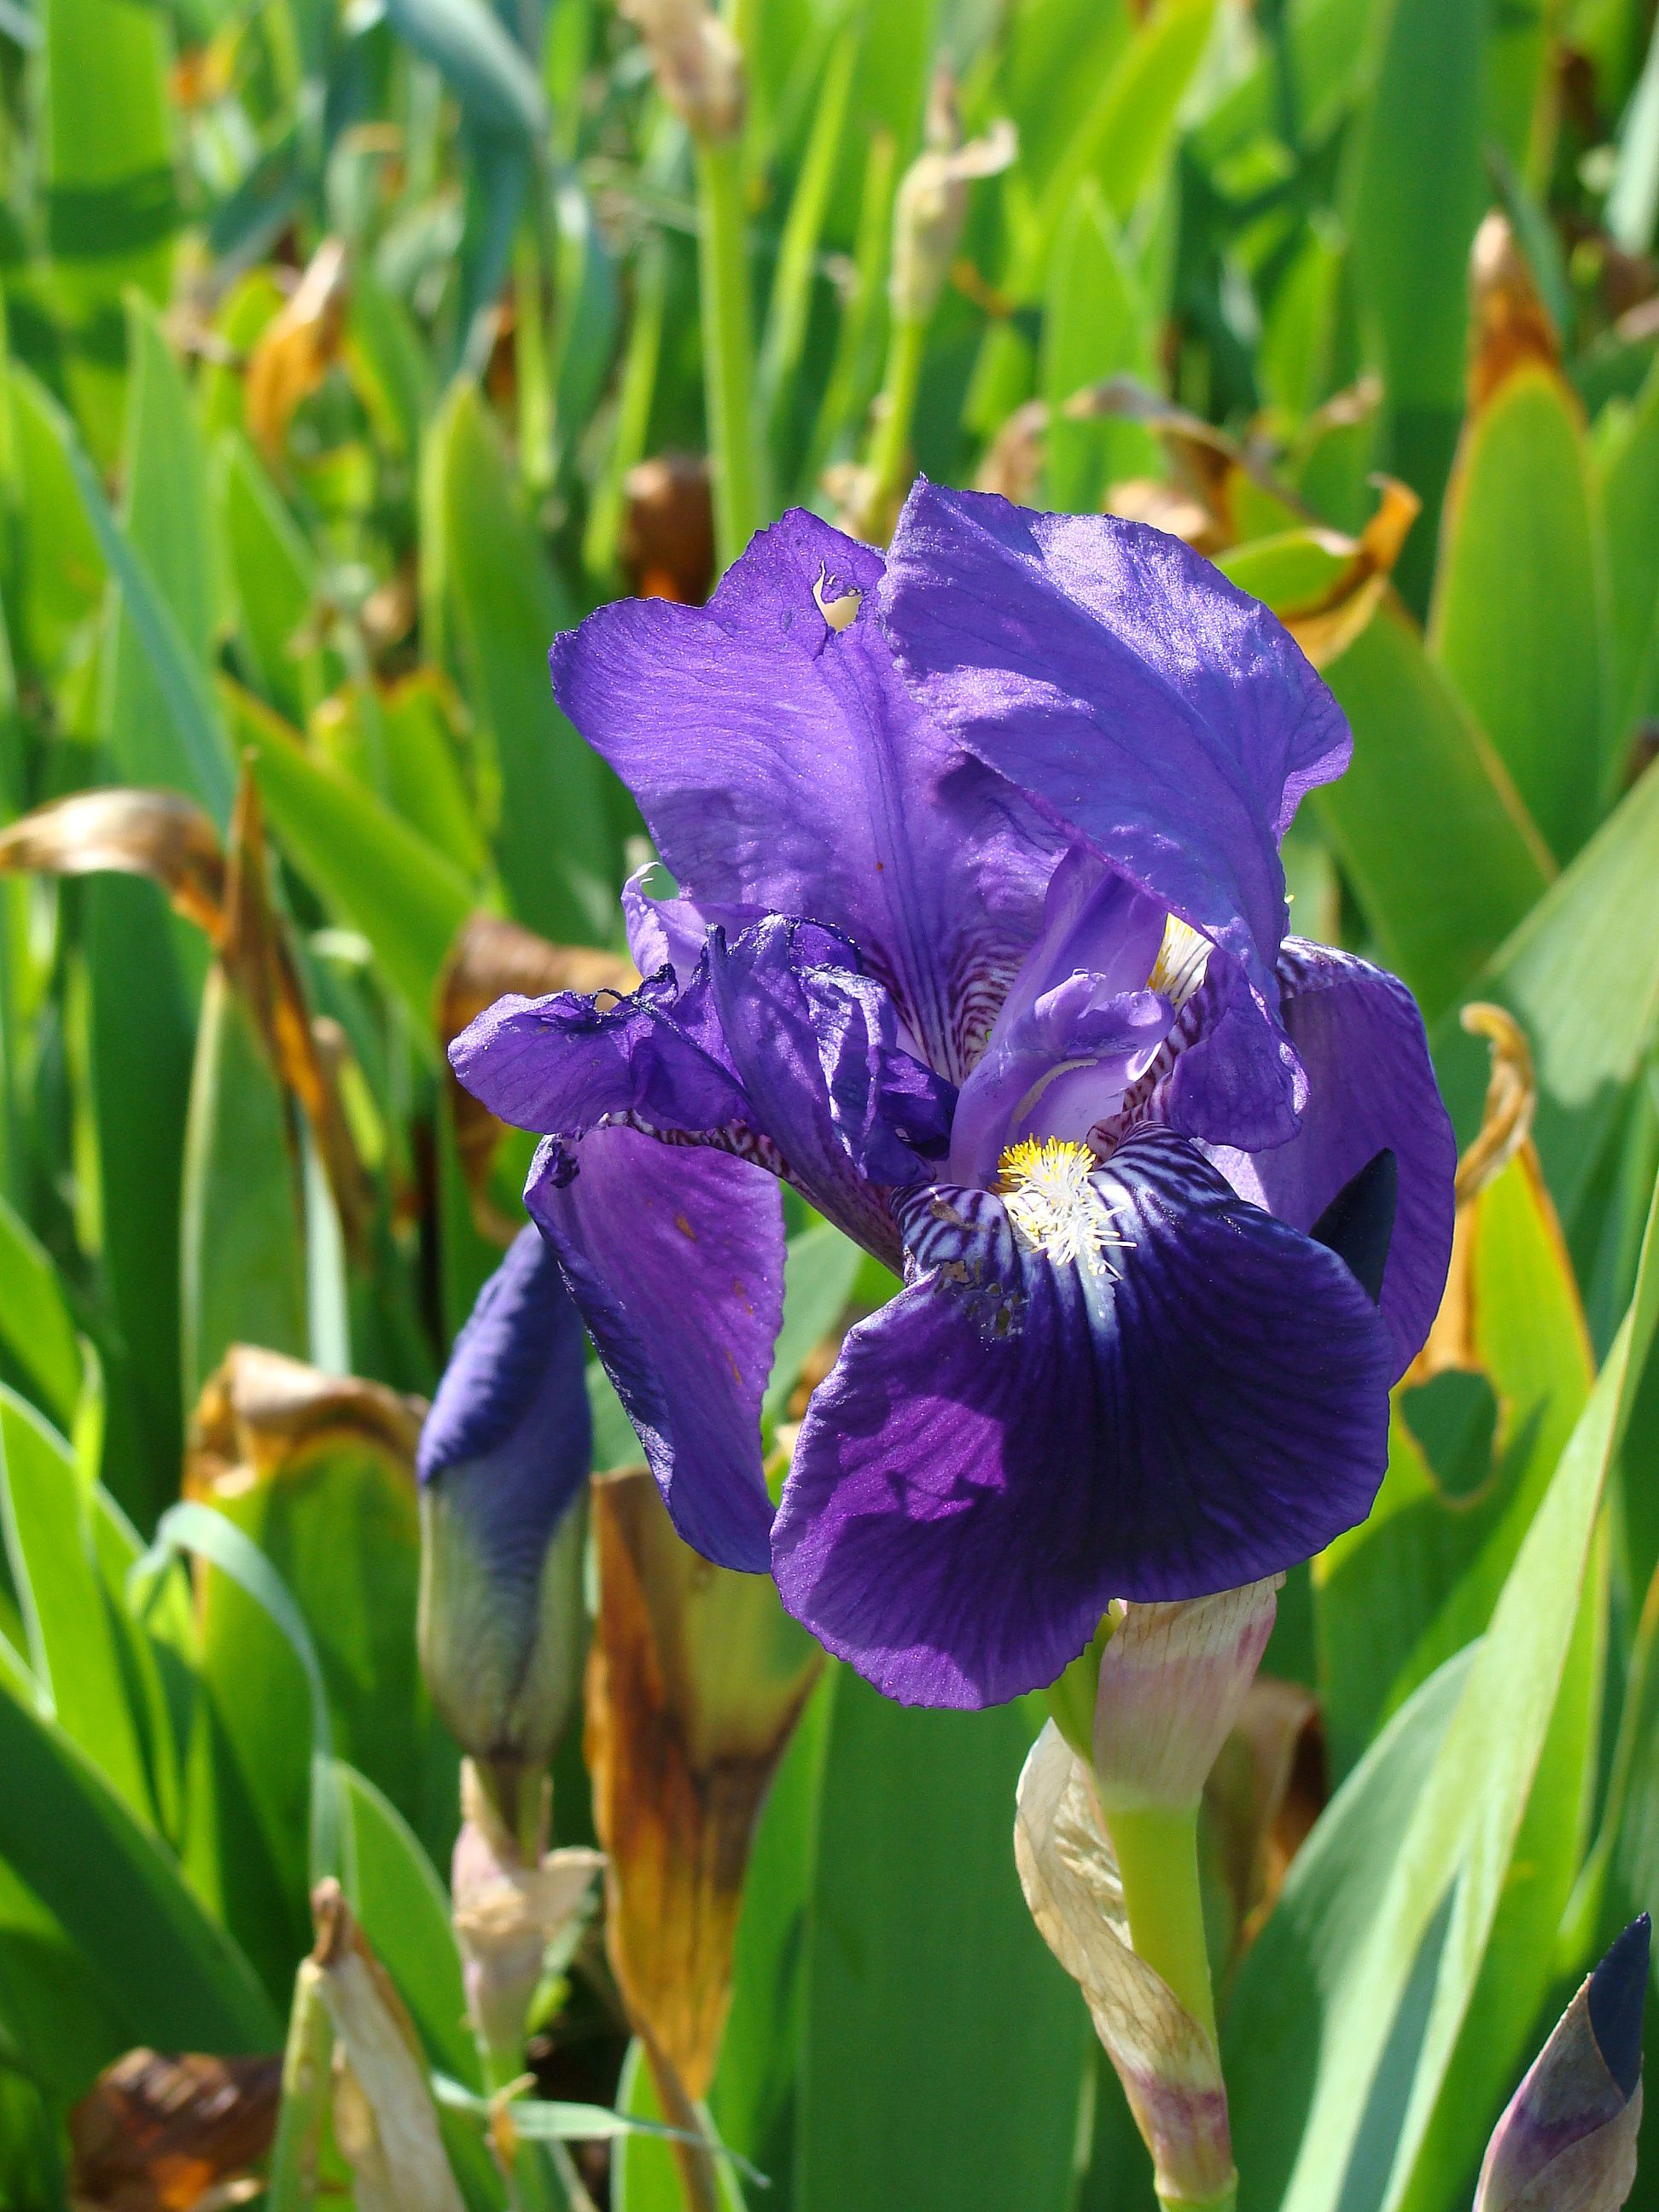 Pin Pin iris flower tattoo meaning read on to know more about pinterest on Pi